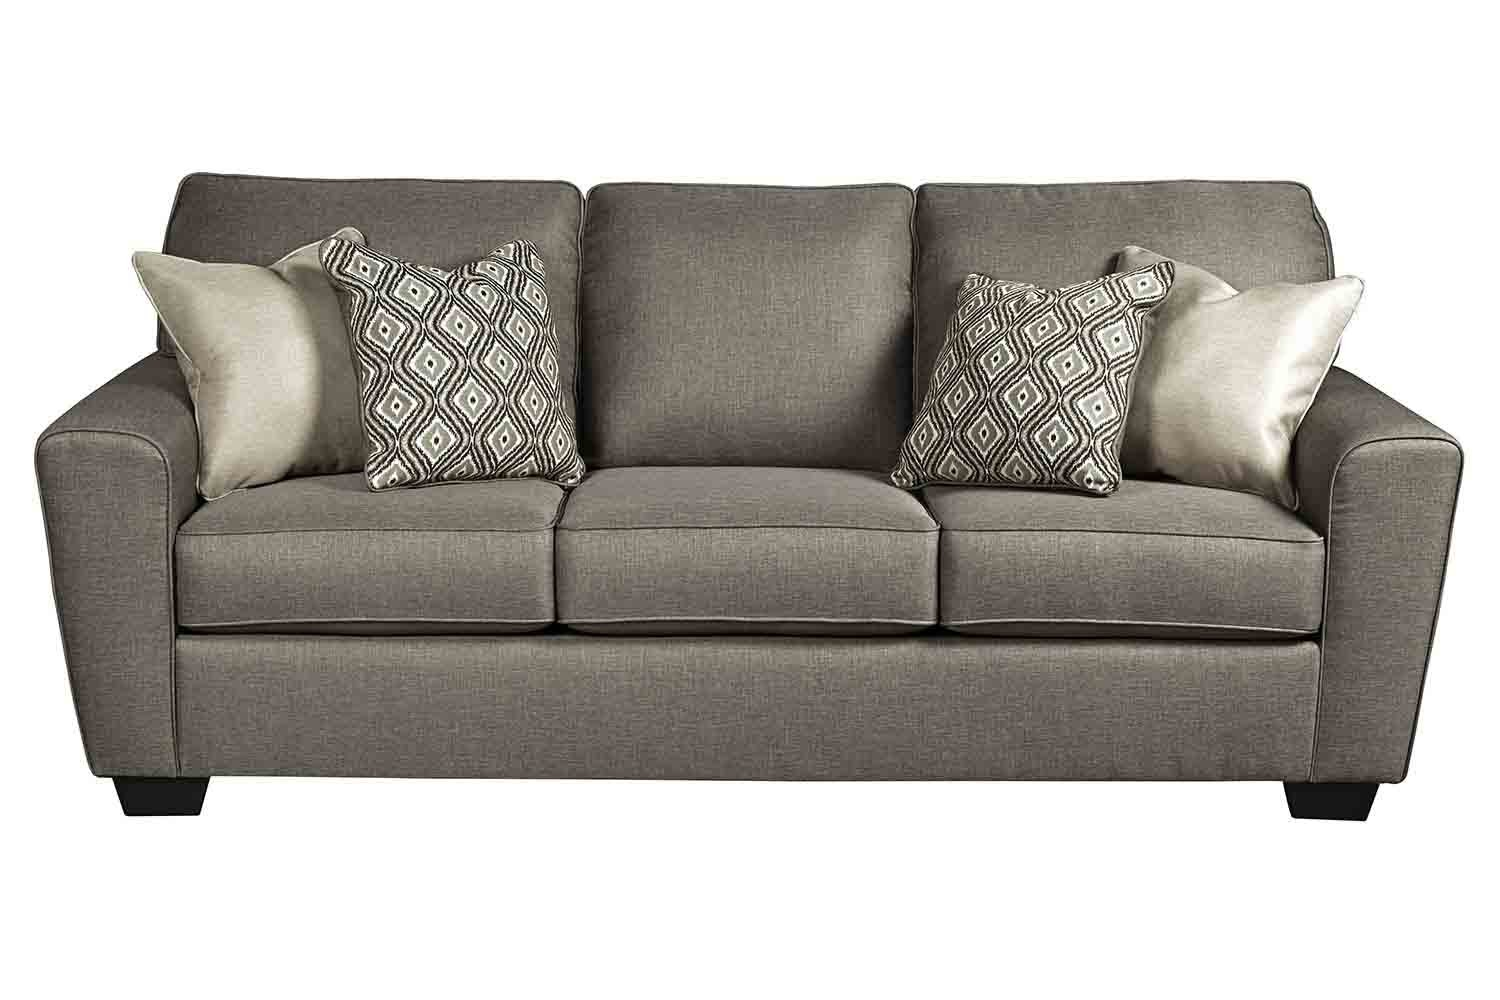 Couch Furniture Calicho Sofa Mor Furniture For Less